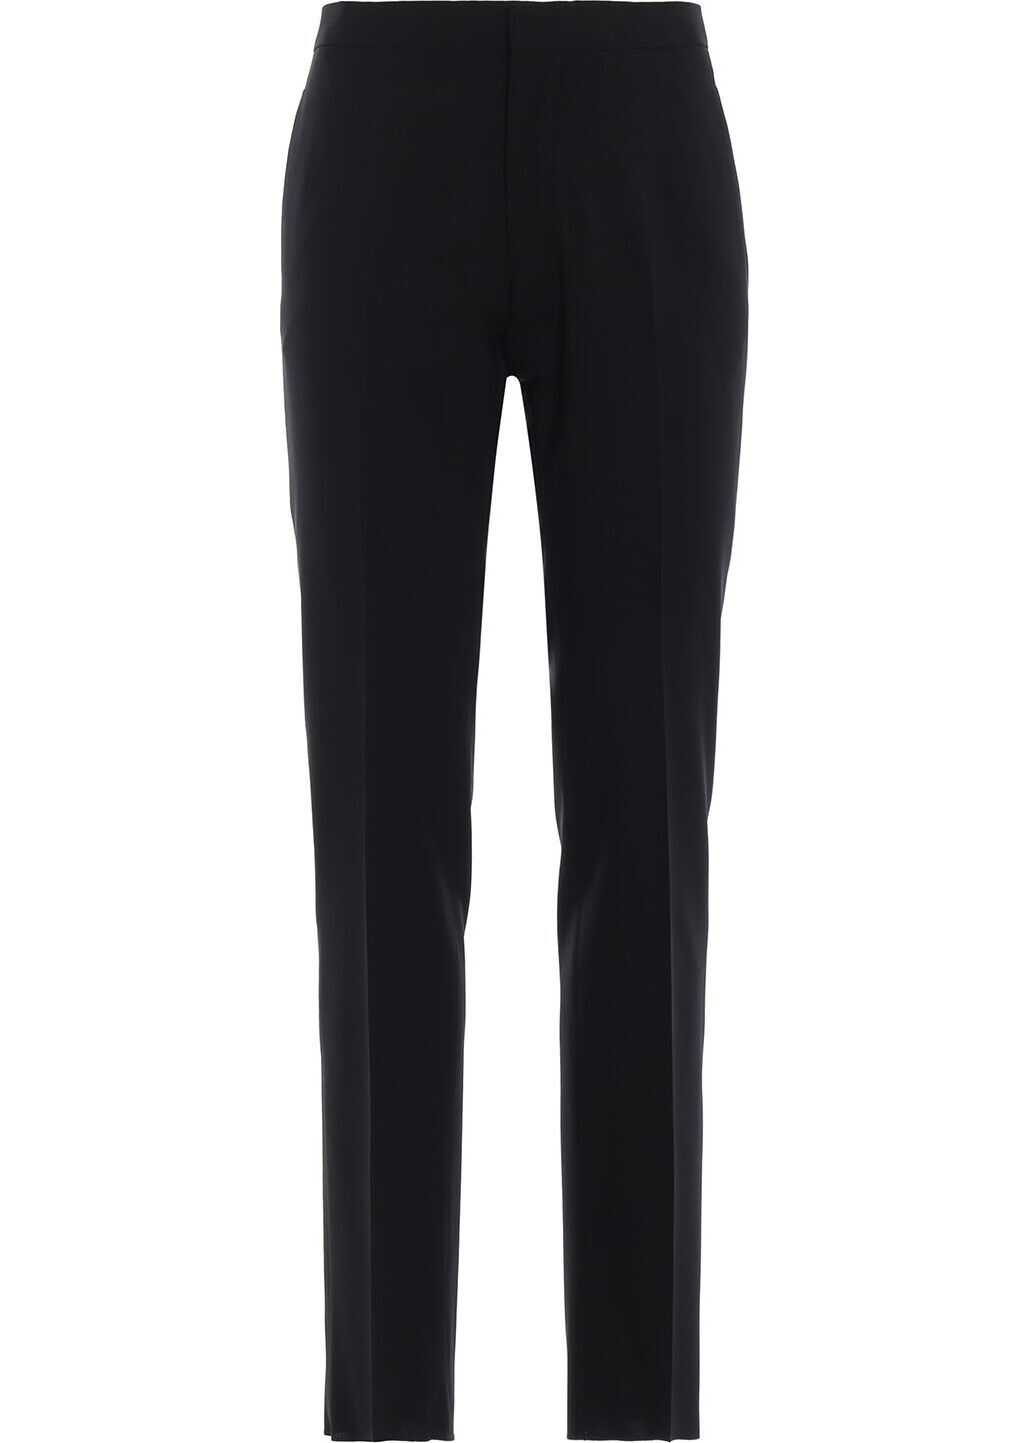 Emporio Armani Wool Pants BLACK